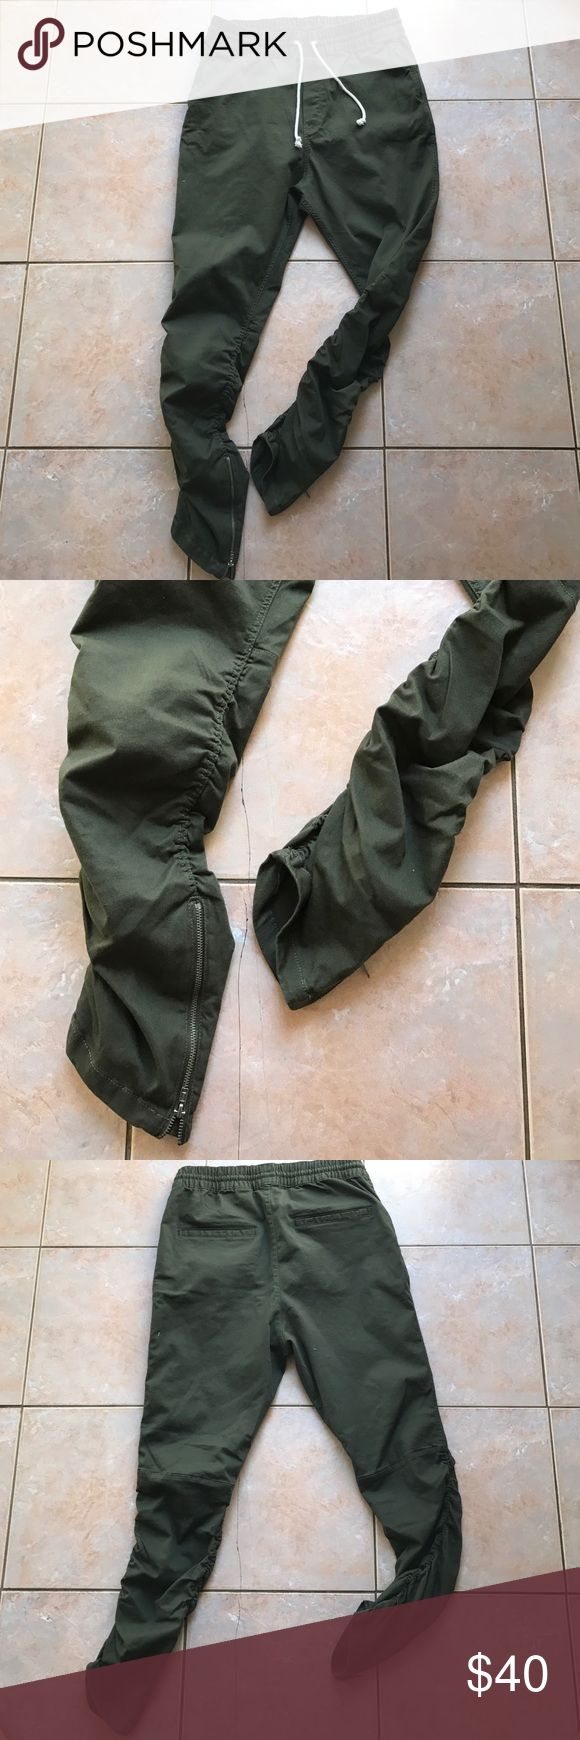 H&M Zipper Pants Men's olive zipper pants has a rouched ankle and zipper! It's a fear of god yeezy inspiration type style! Brand new! Never worn! Just tried on! No tags because I rip them off sorry! Size 32 men but can fit a small or medium waist stylish gal! Price is firm! SOLD OUT H&M Pants Skinny